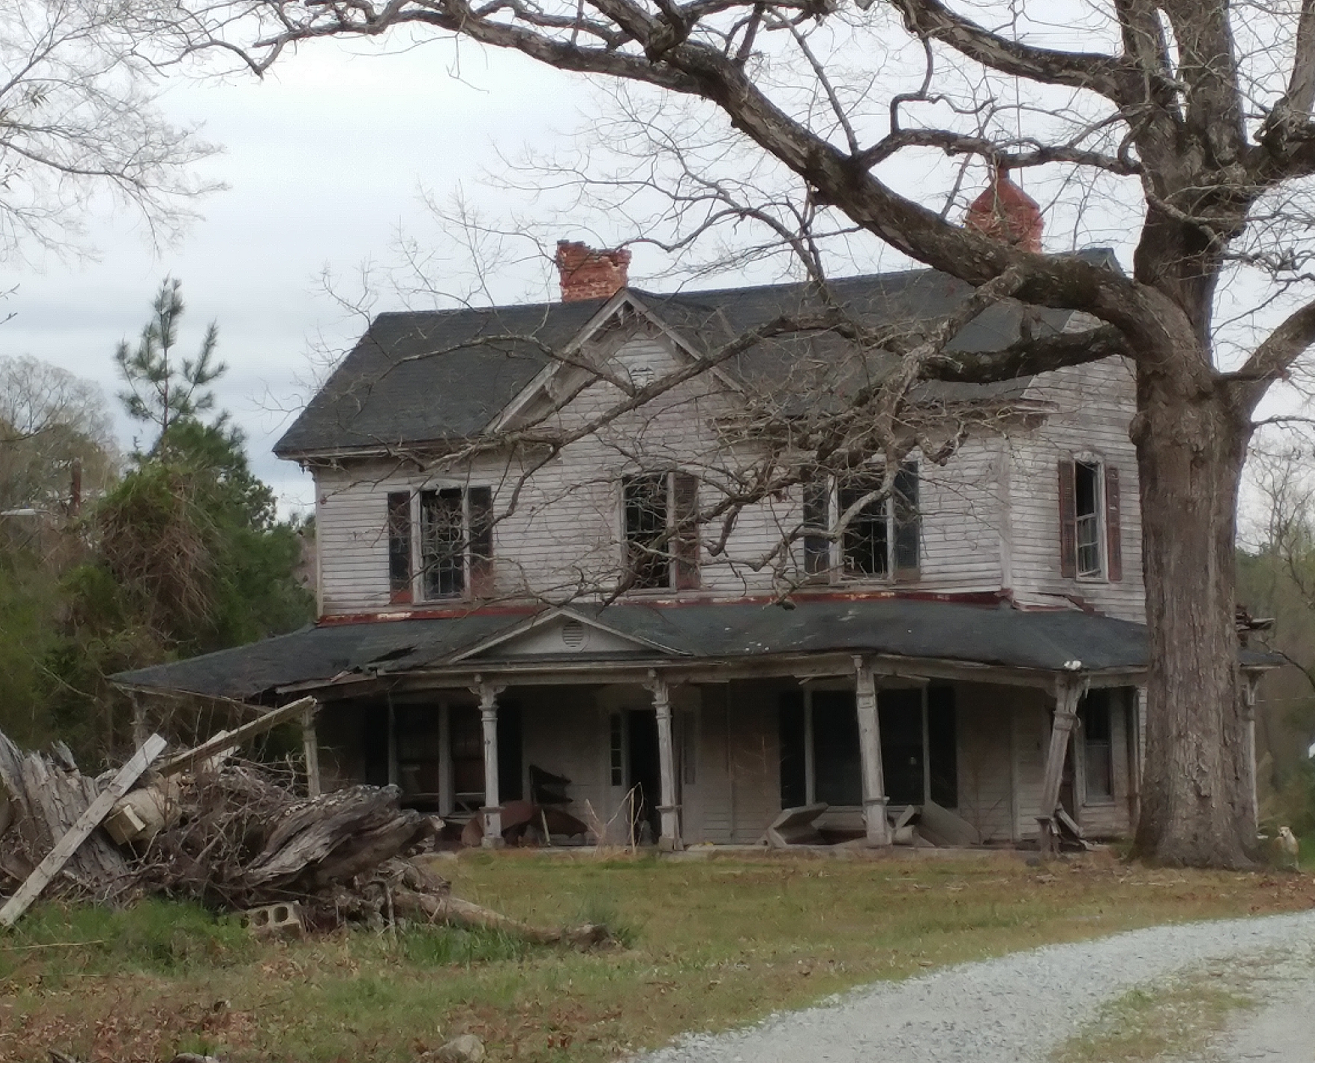 Old Farmhouse in Durham NC [1318x1066] | Abandoned in 2019